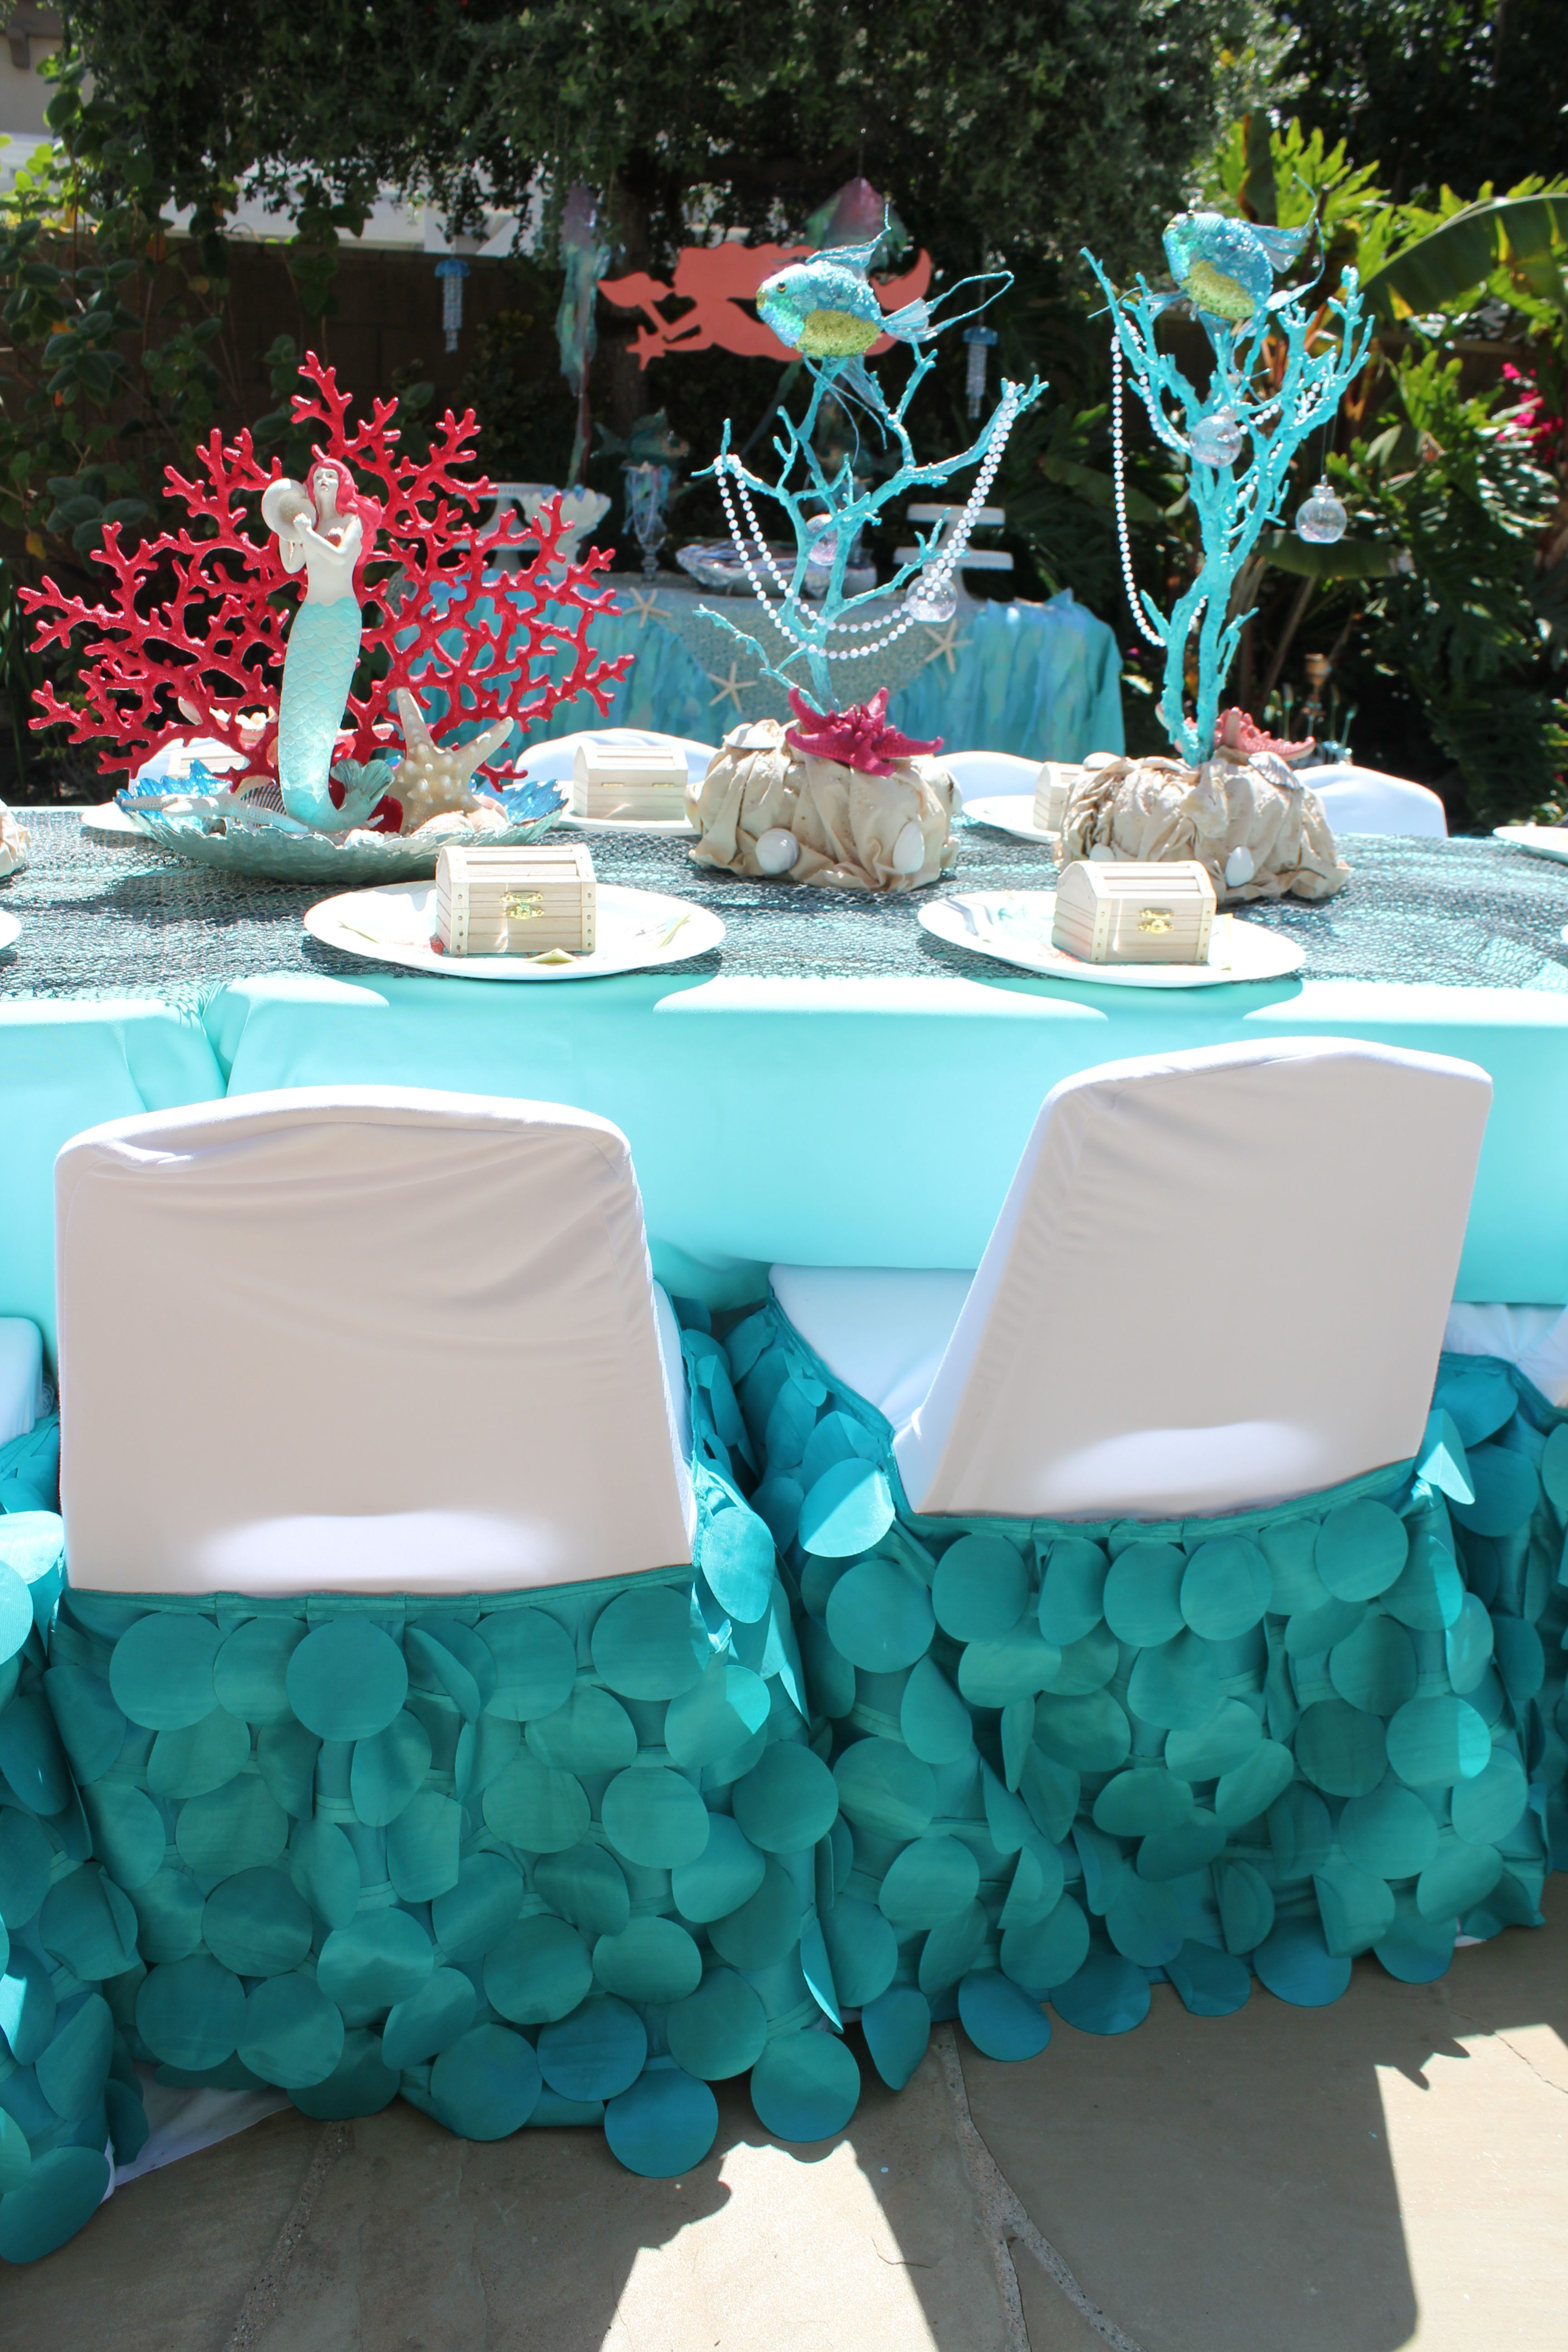 Beau Mermaid Party   Beautiful Custom Made Mermaid Tail Kids Chair Covers, We  Specialize In Kid Sized Party Rentals And Provide Custom Made Chair Covers  To Match ...